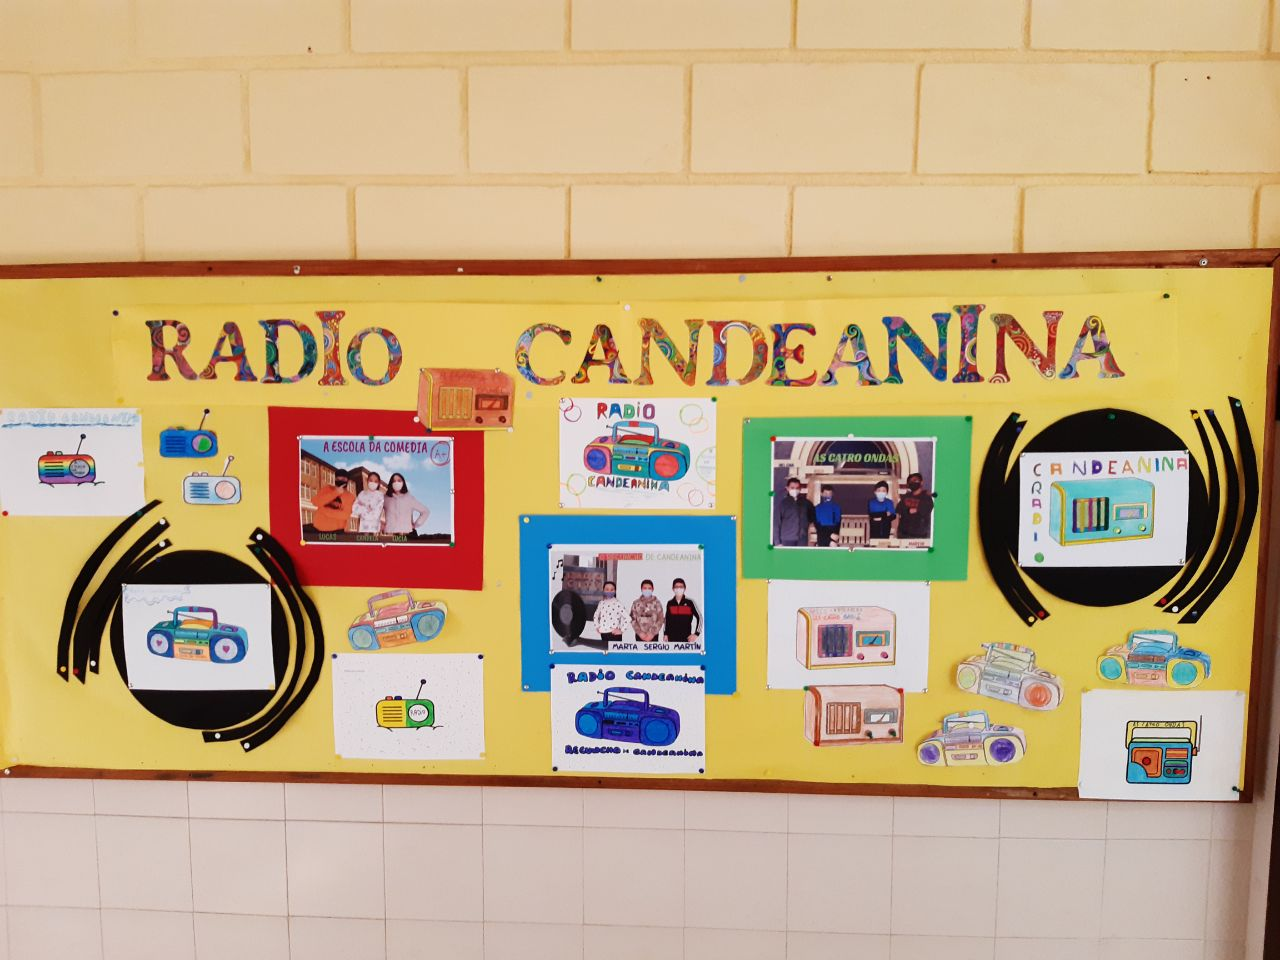 Radio Candeanina